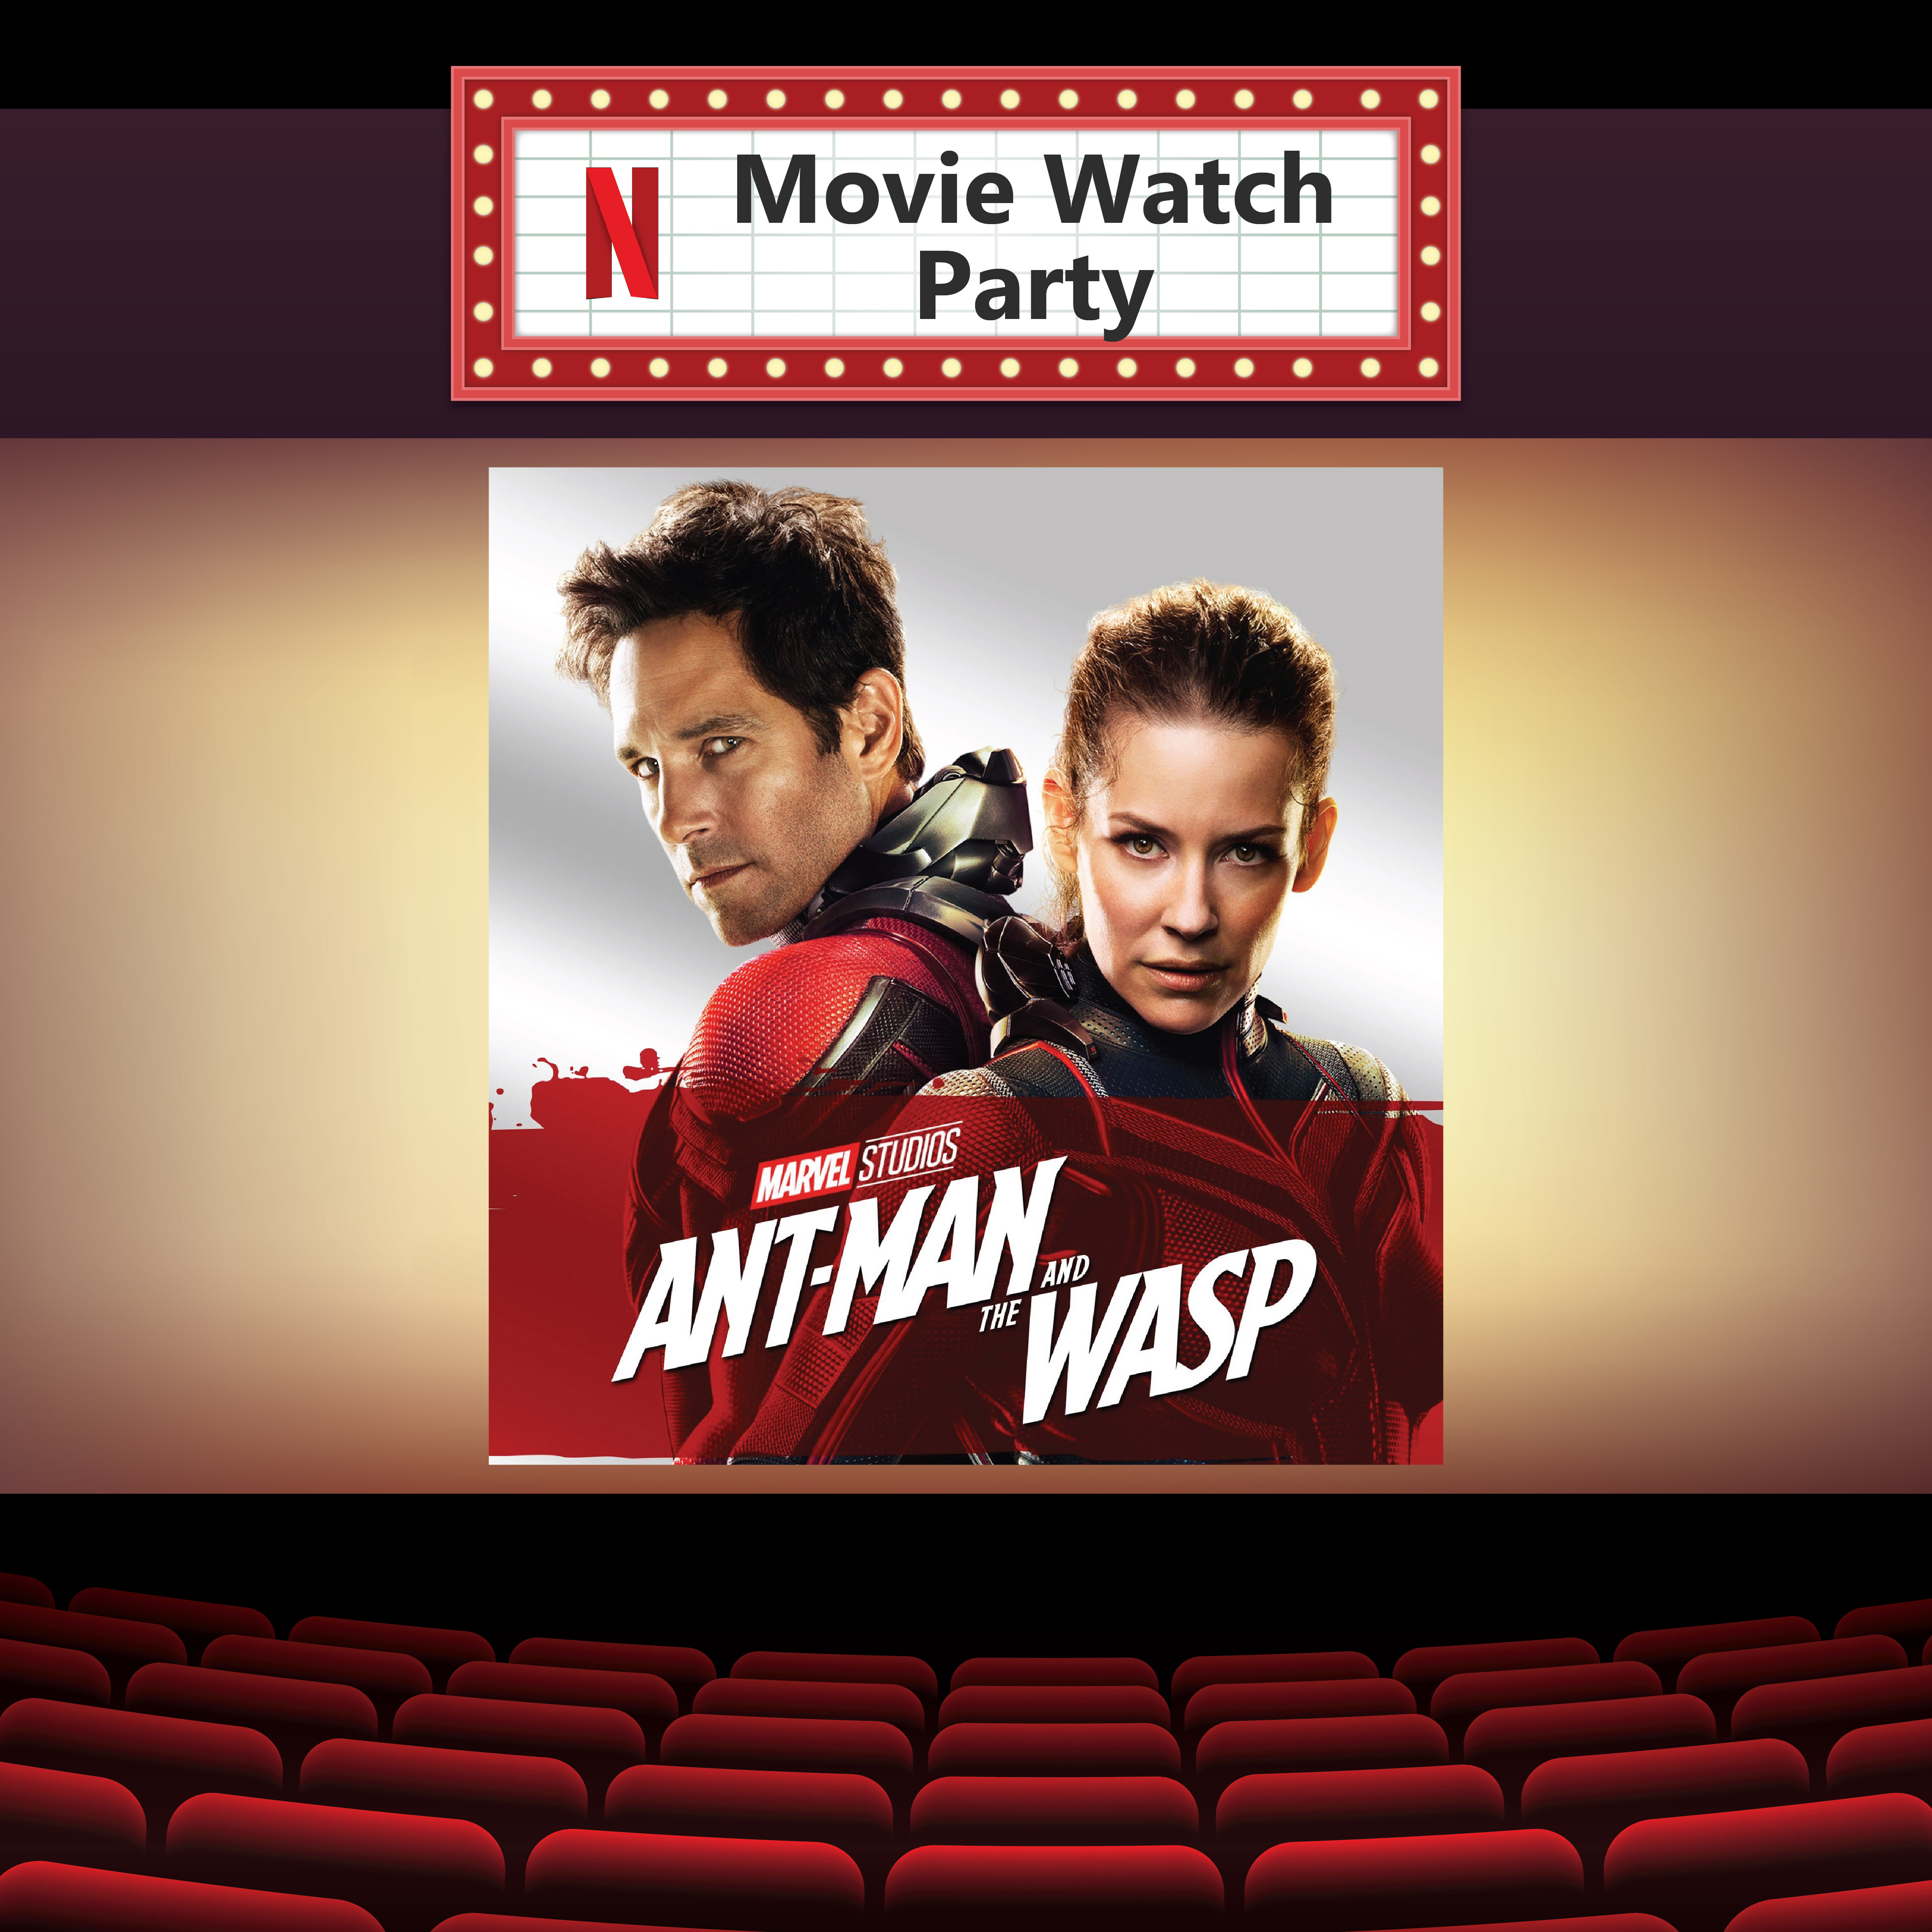 Ant-Man and the Wasp Netflix Party